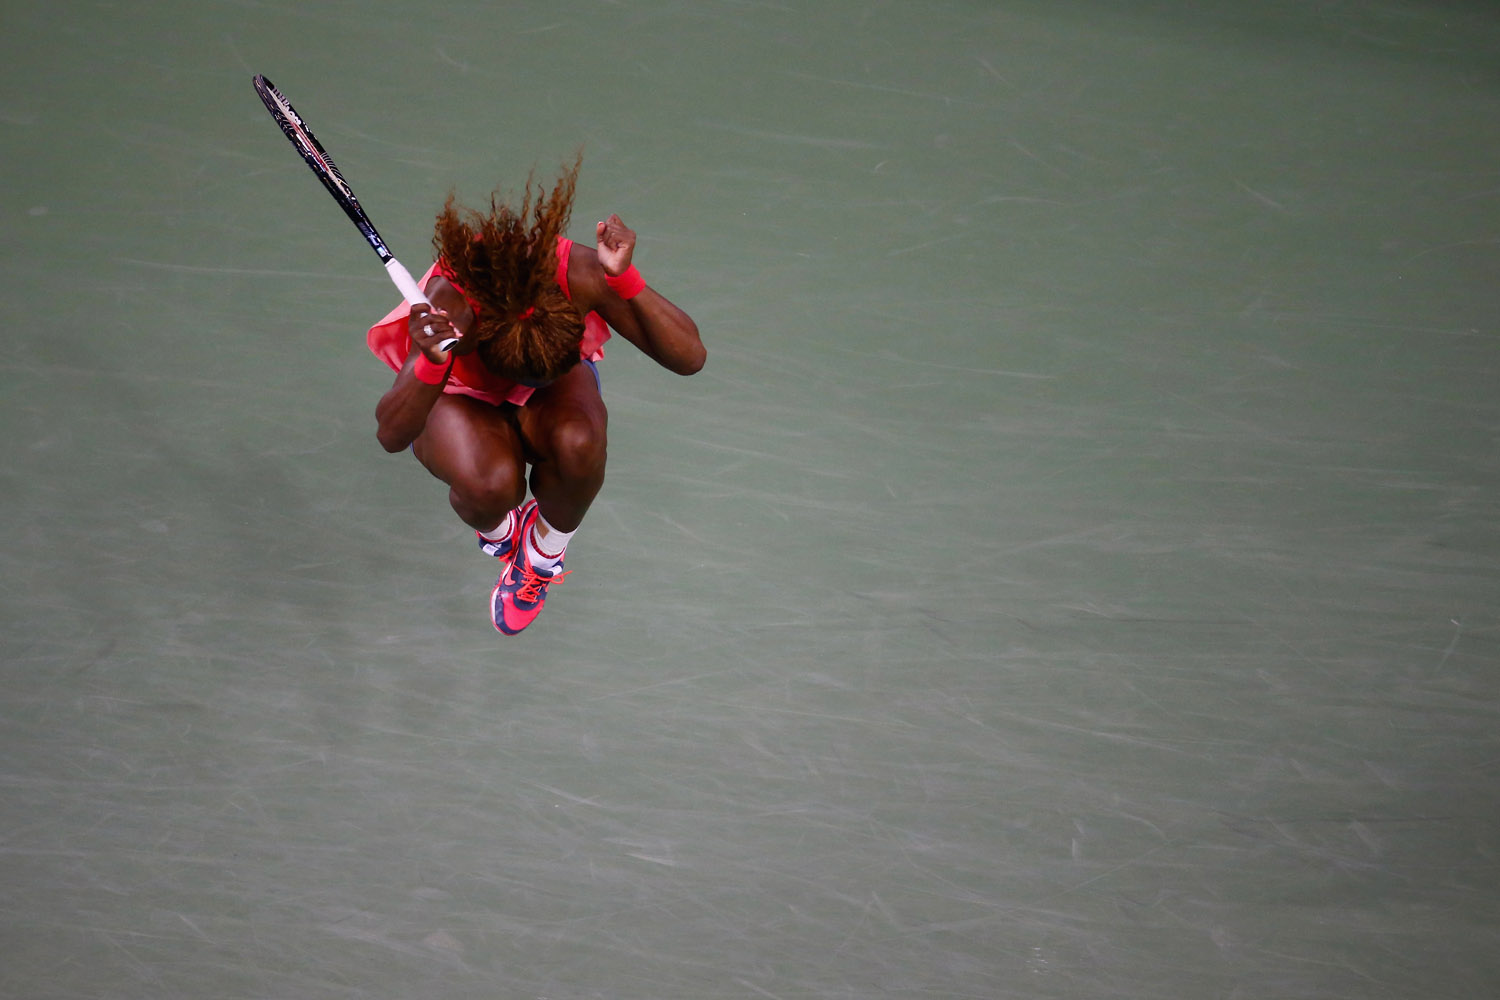 Sept. 8, 2013. Serena Williams of the United States celebrates winning her women's singles final match against Victoria Azarenka of Belarus on Day Fourteen of the 2013 US Open at the USTA Billie Jean King National Tennis Center in New York City.